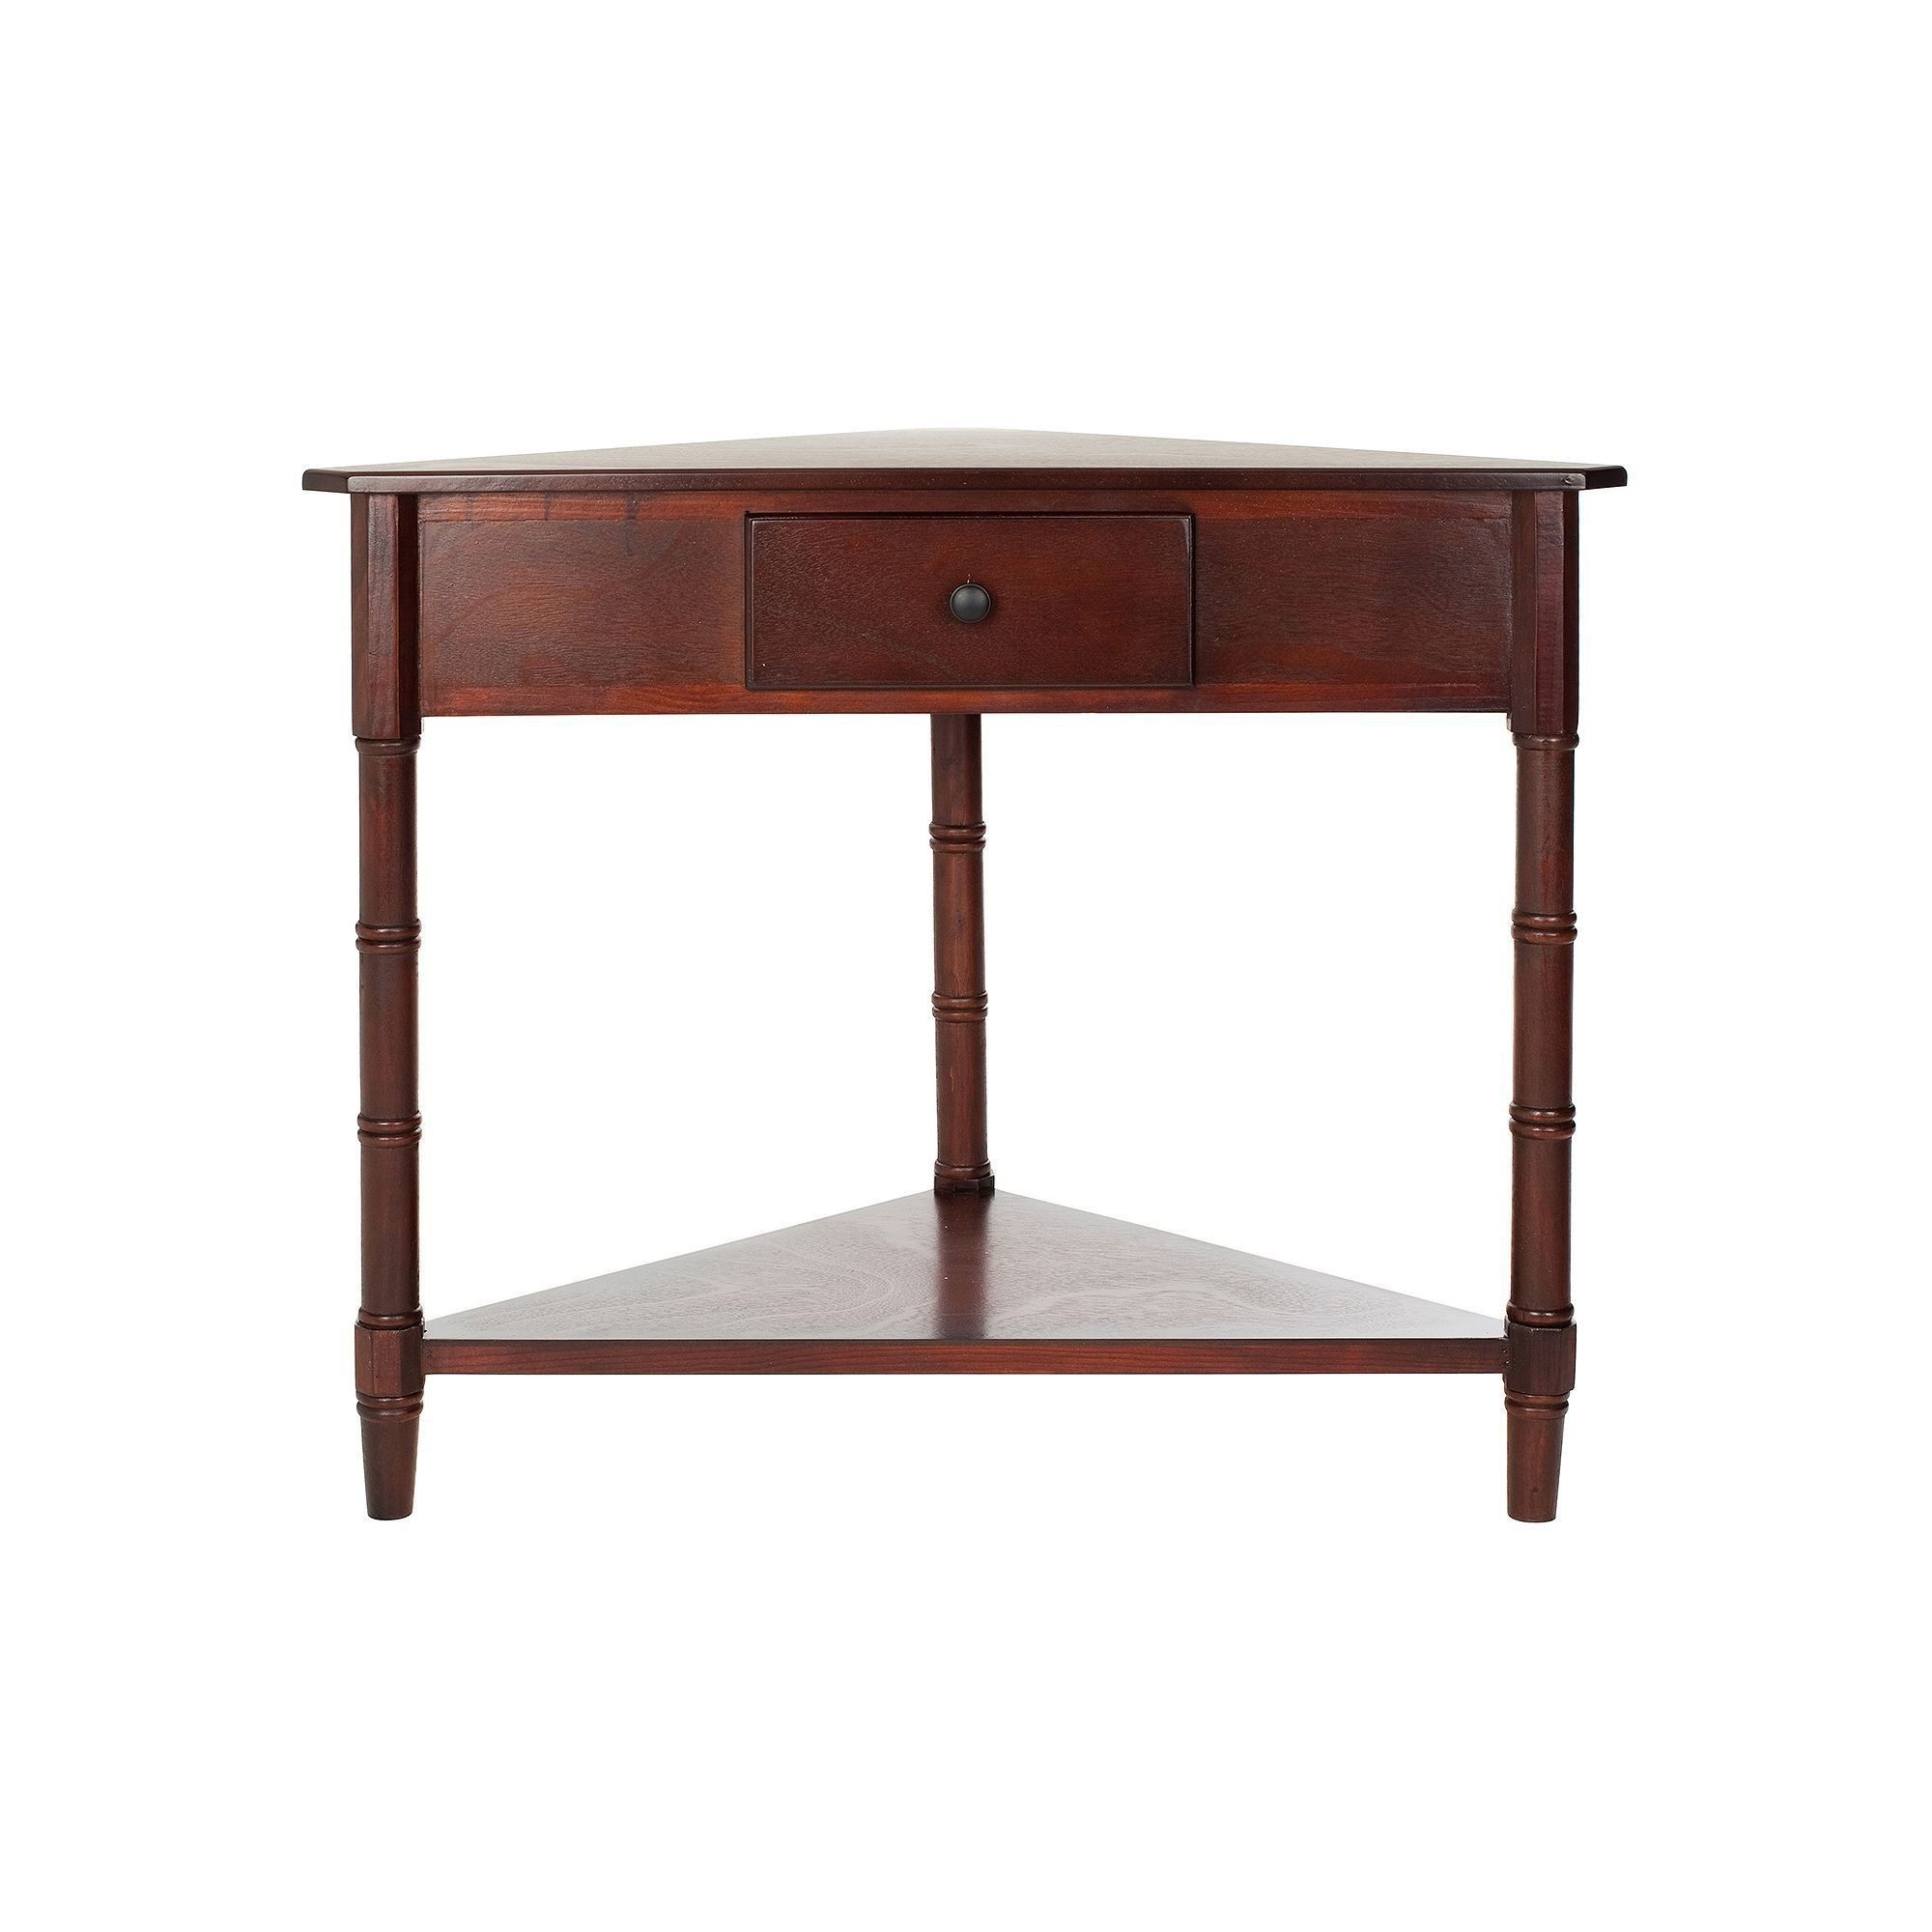 safavieh gomez corner accent table products with storage brown folding dining for small space side ideas living room coastal decor lamps coffee top homesense foldable kmart